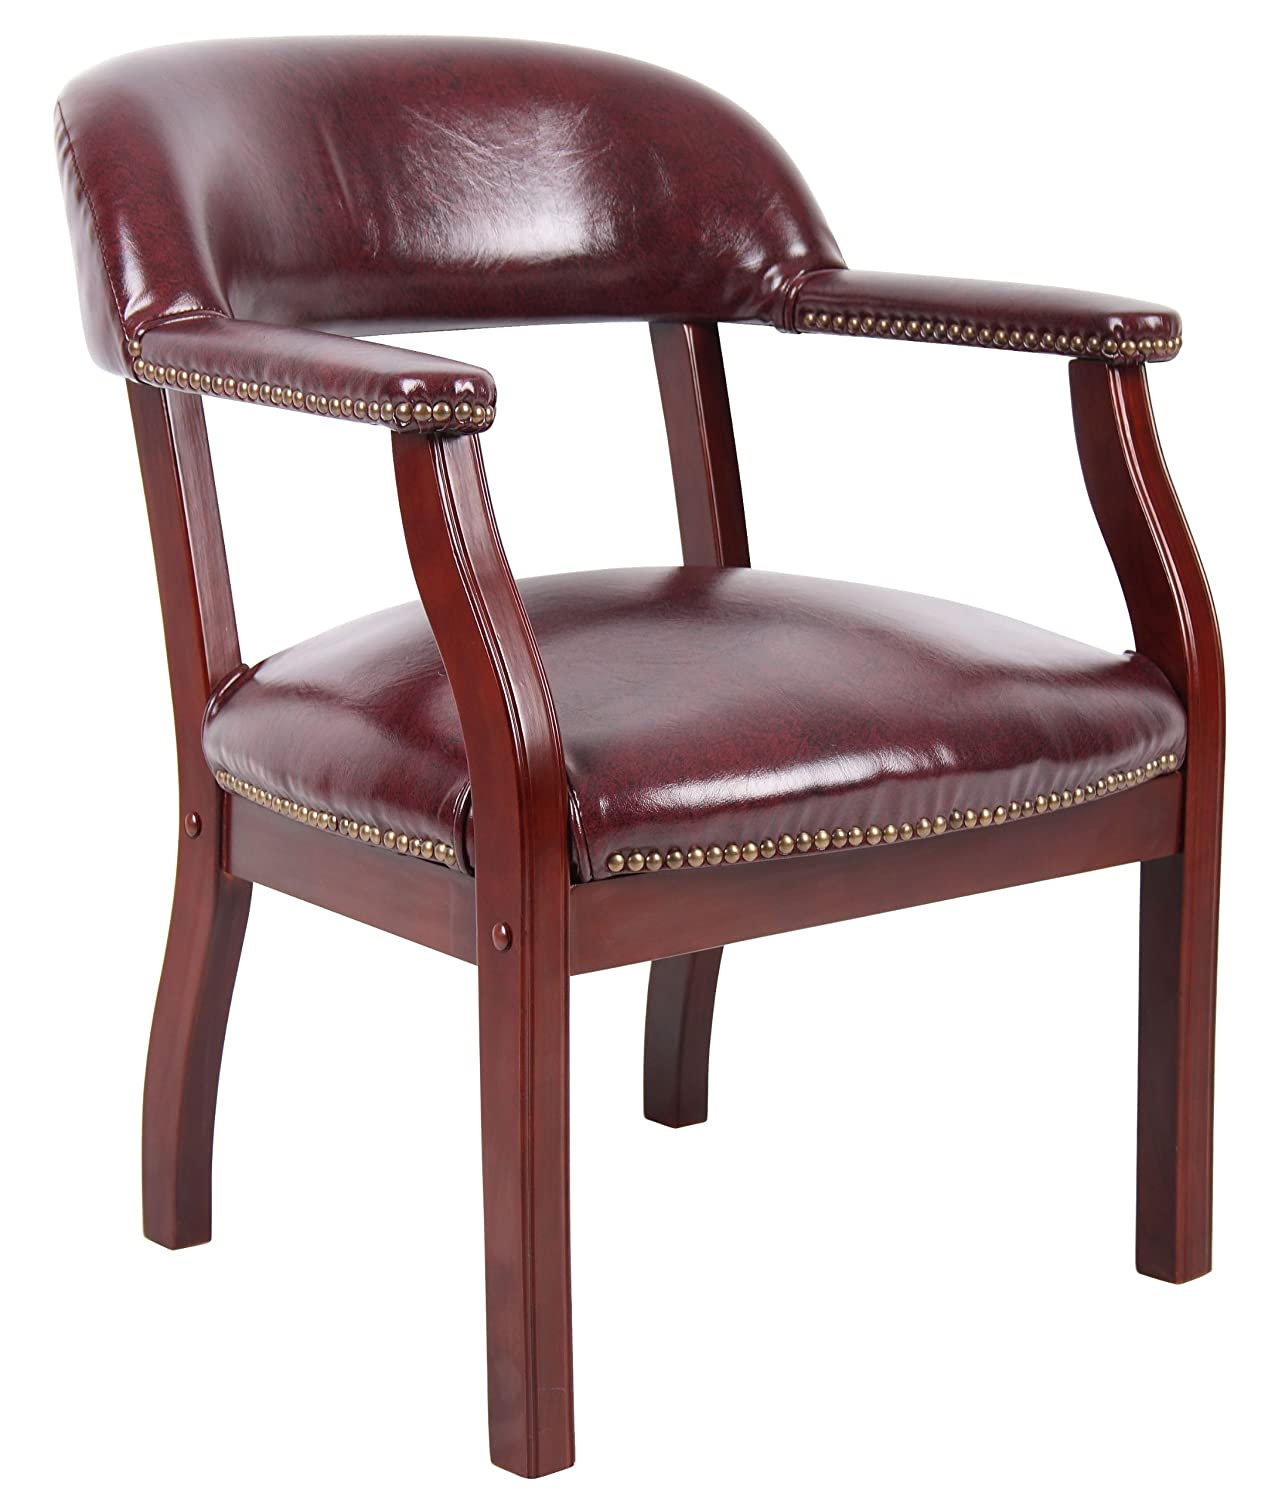 Armchairs For Heavy People Big Men Rated For Big